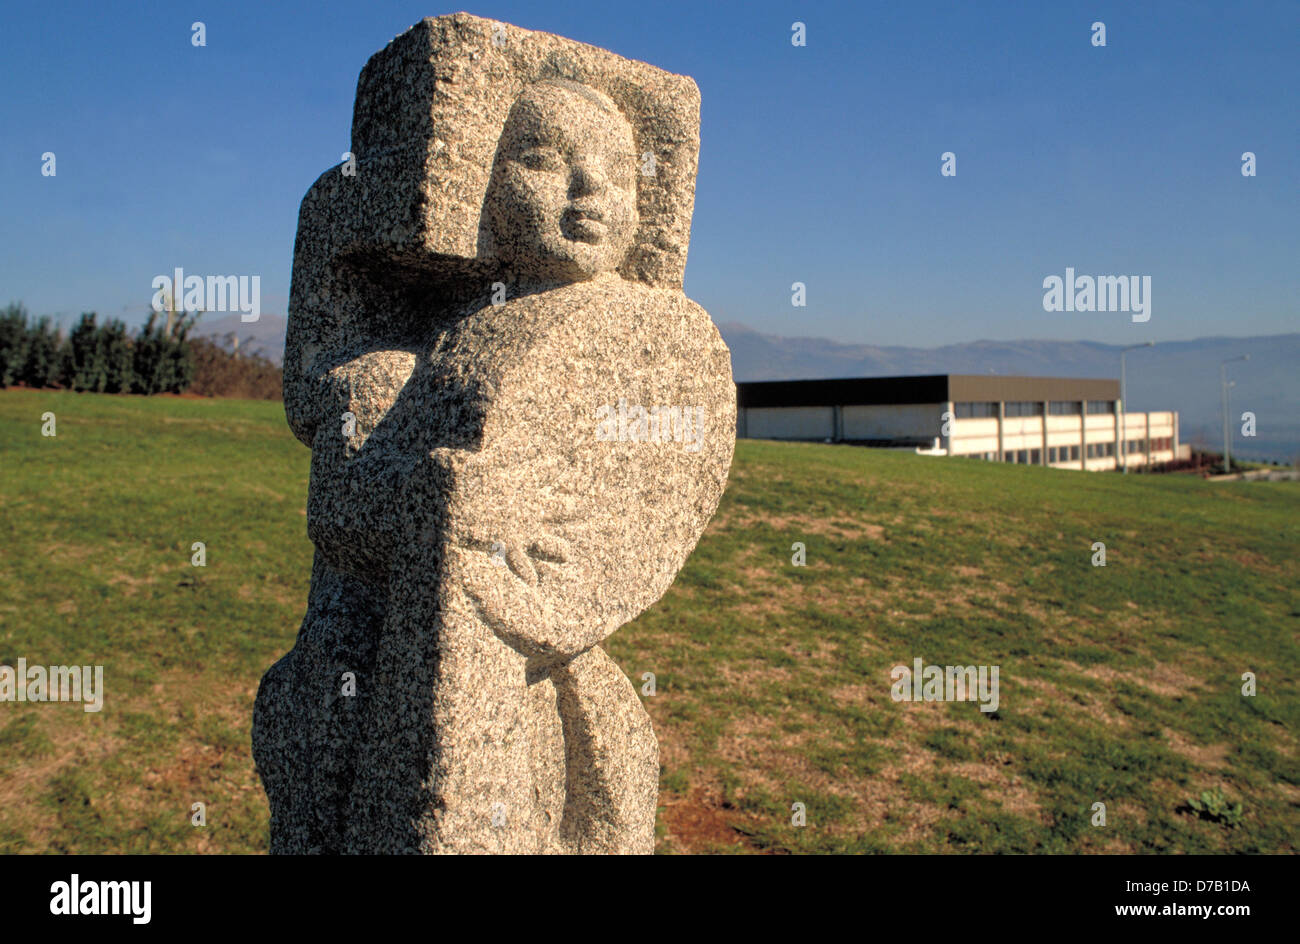 Sculpture in an idustrial park - Stock Image